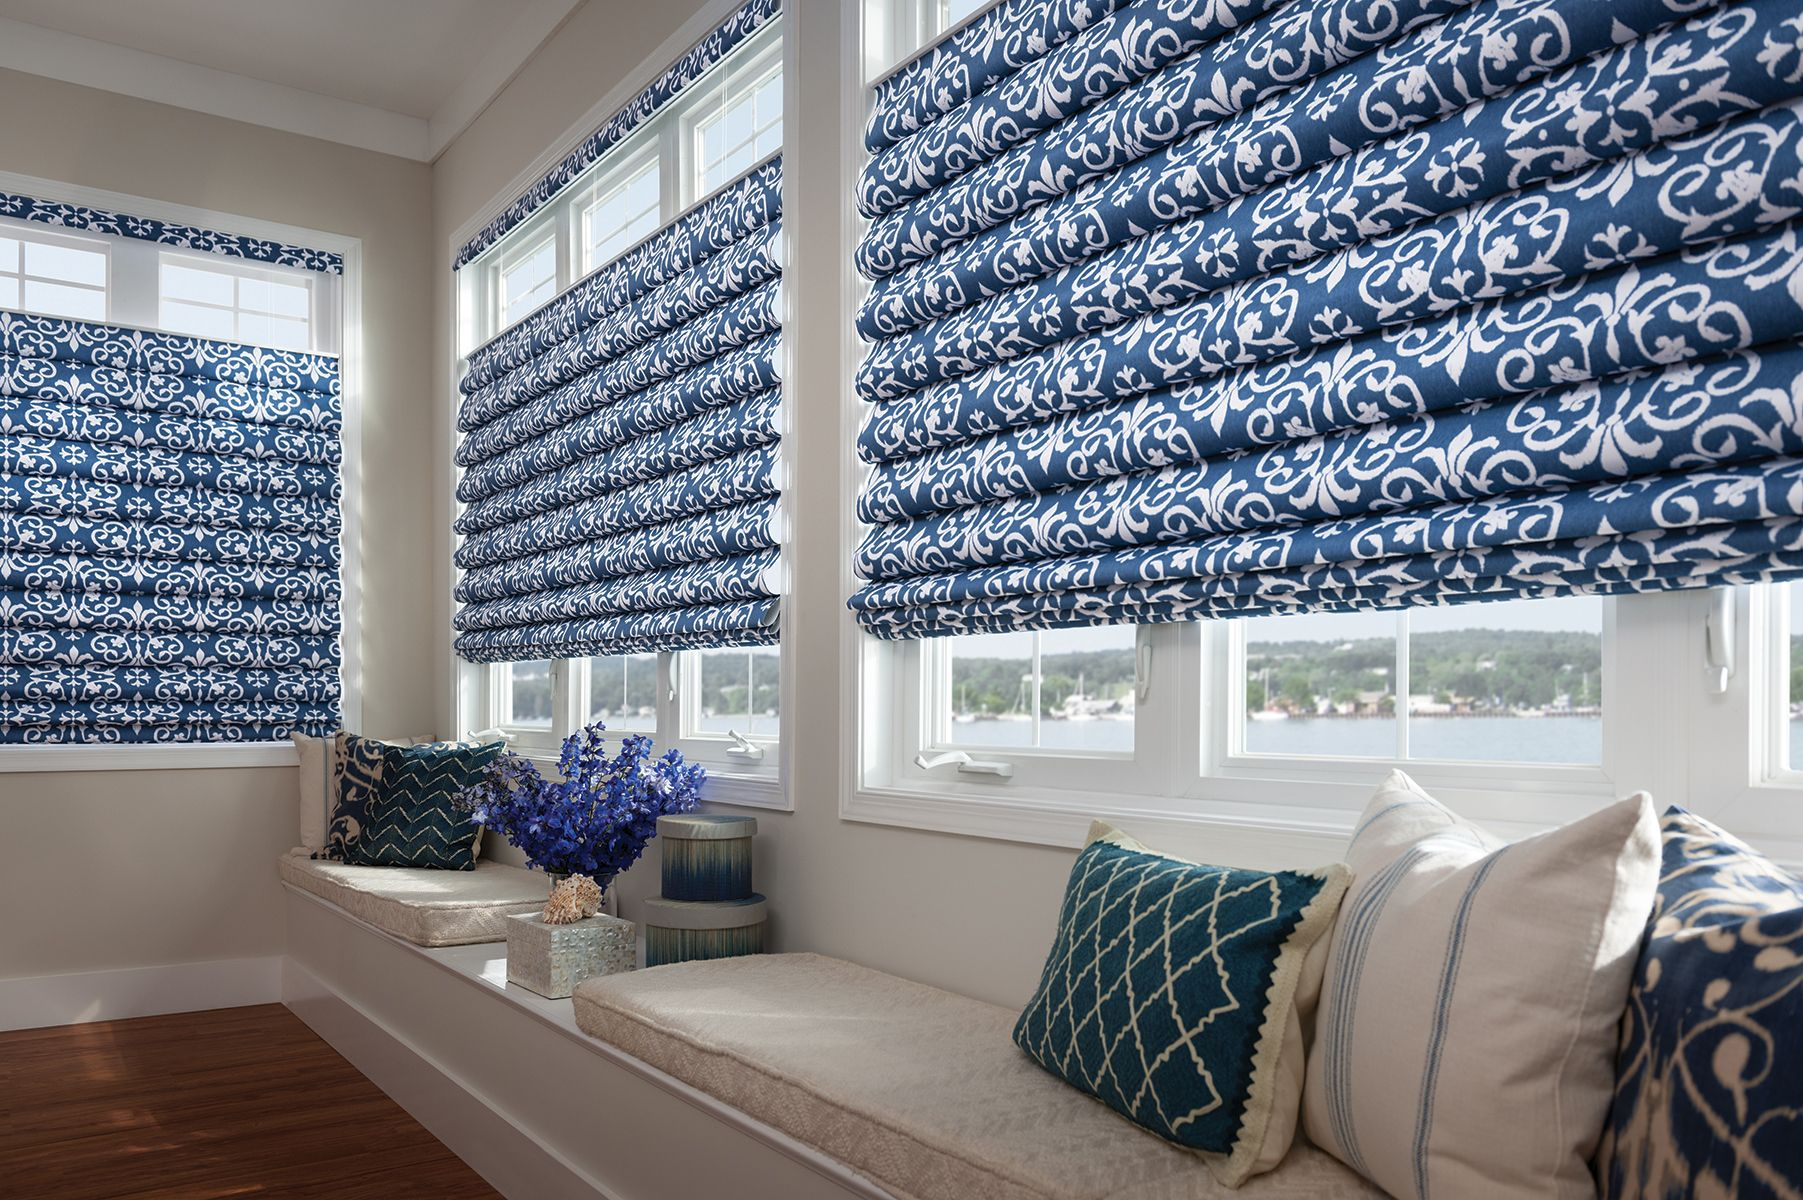 http://homestarsdirect.com/window-coverings/